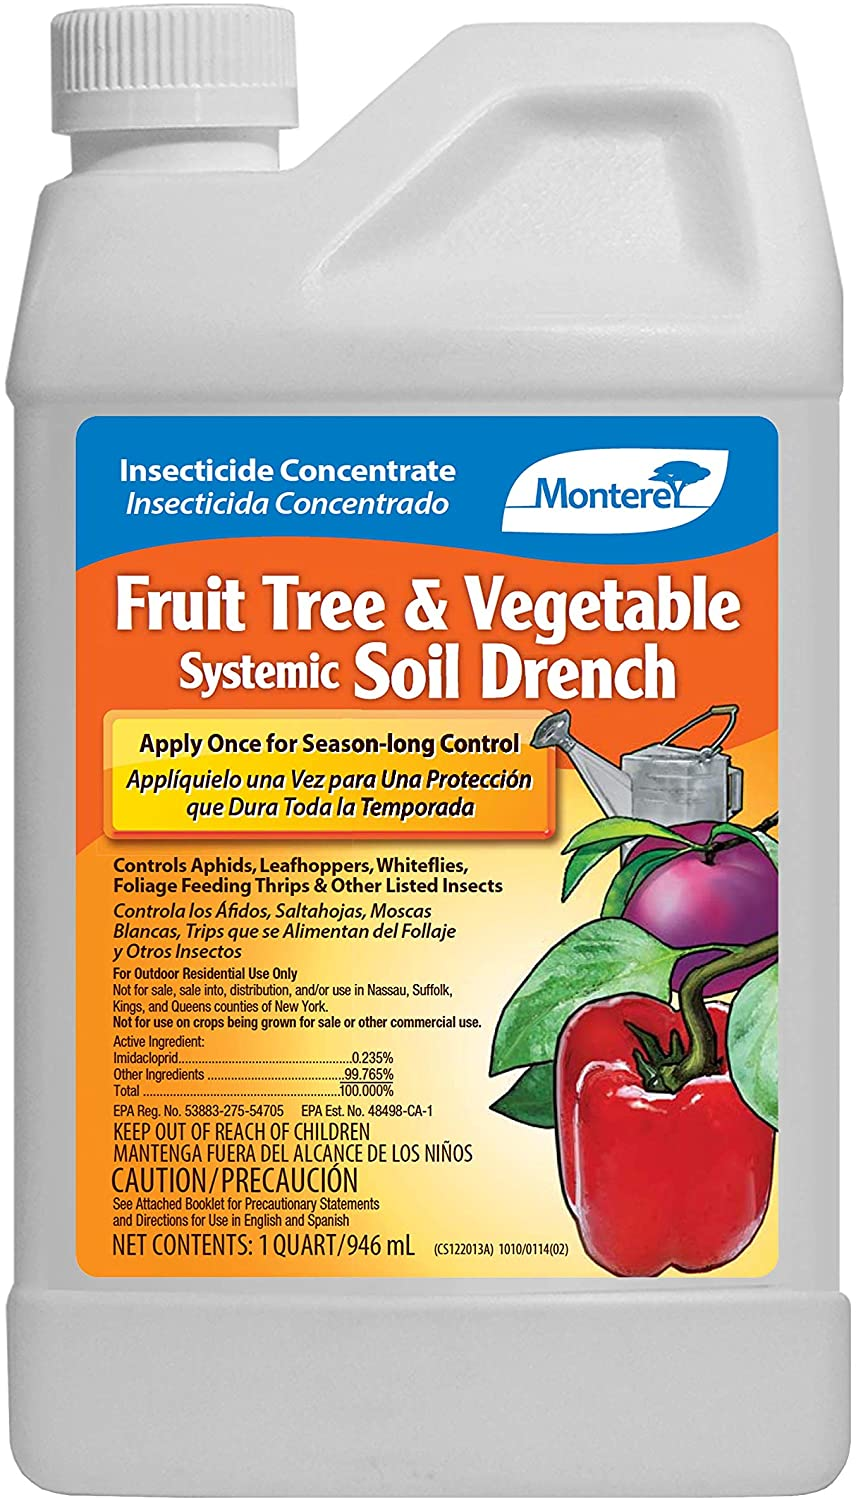 Monterey LG 6274 Fruit Tree & Vegetable Systemic Soil Drench Treatment Insecticide/Pesticide Concentrate for Control of Insects, 32 oz